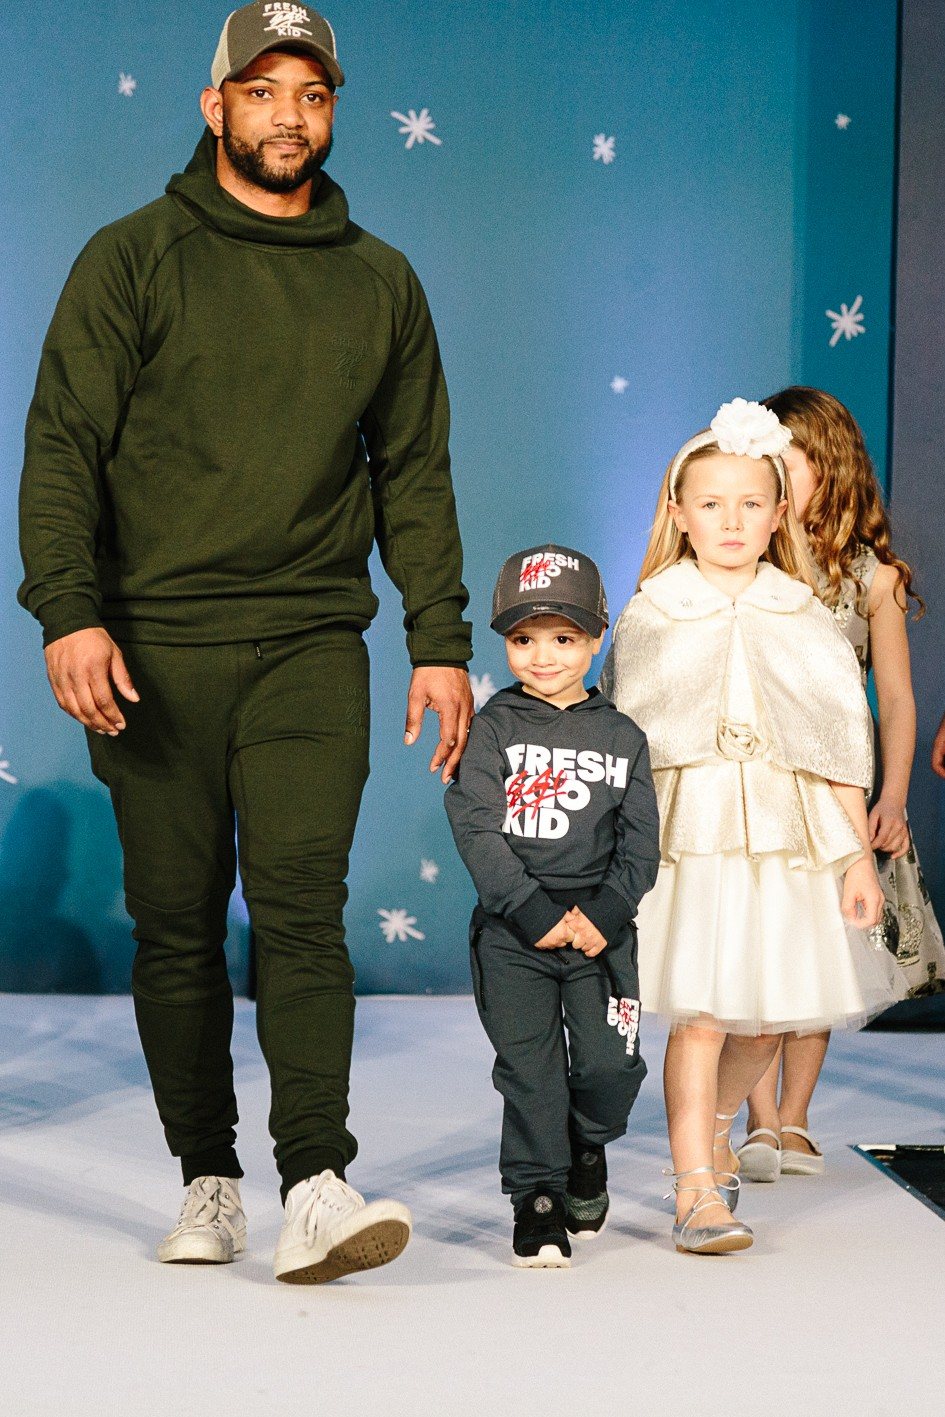 JB Gill took to the catwalk with his son Ace both wearing Fresh Ego Kid